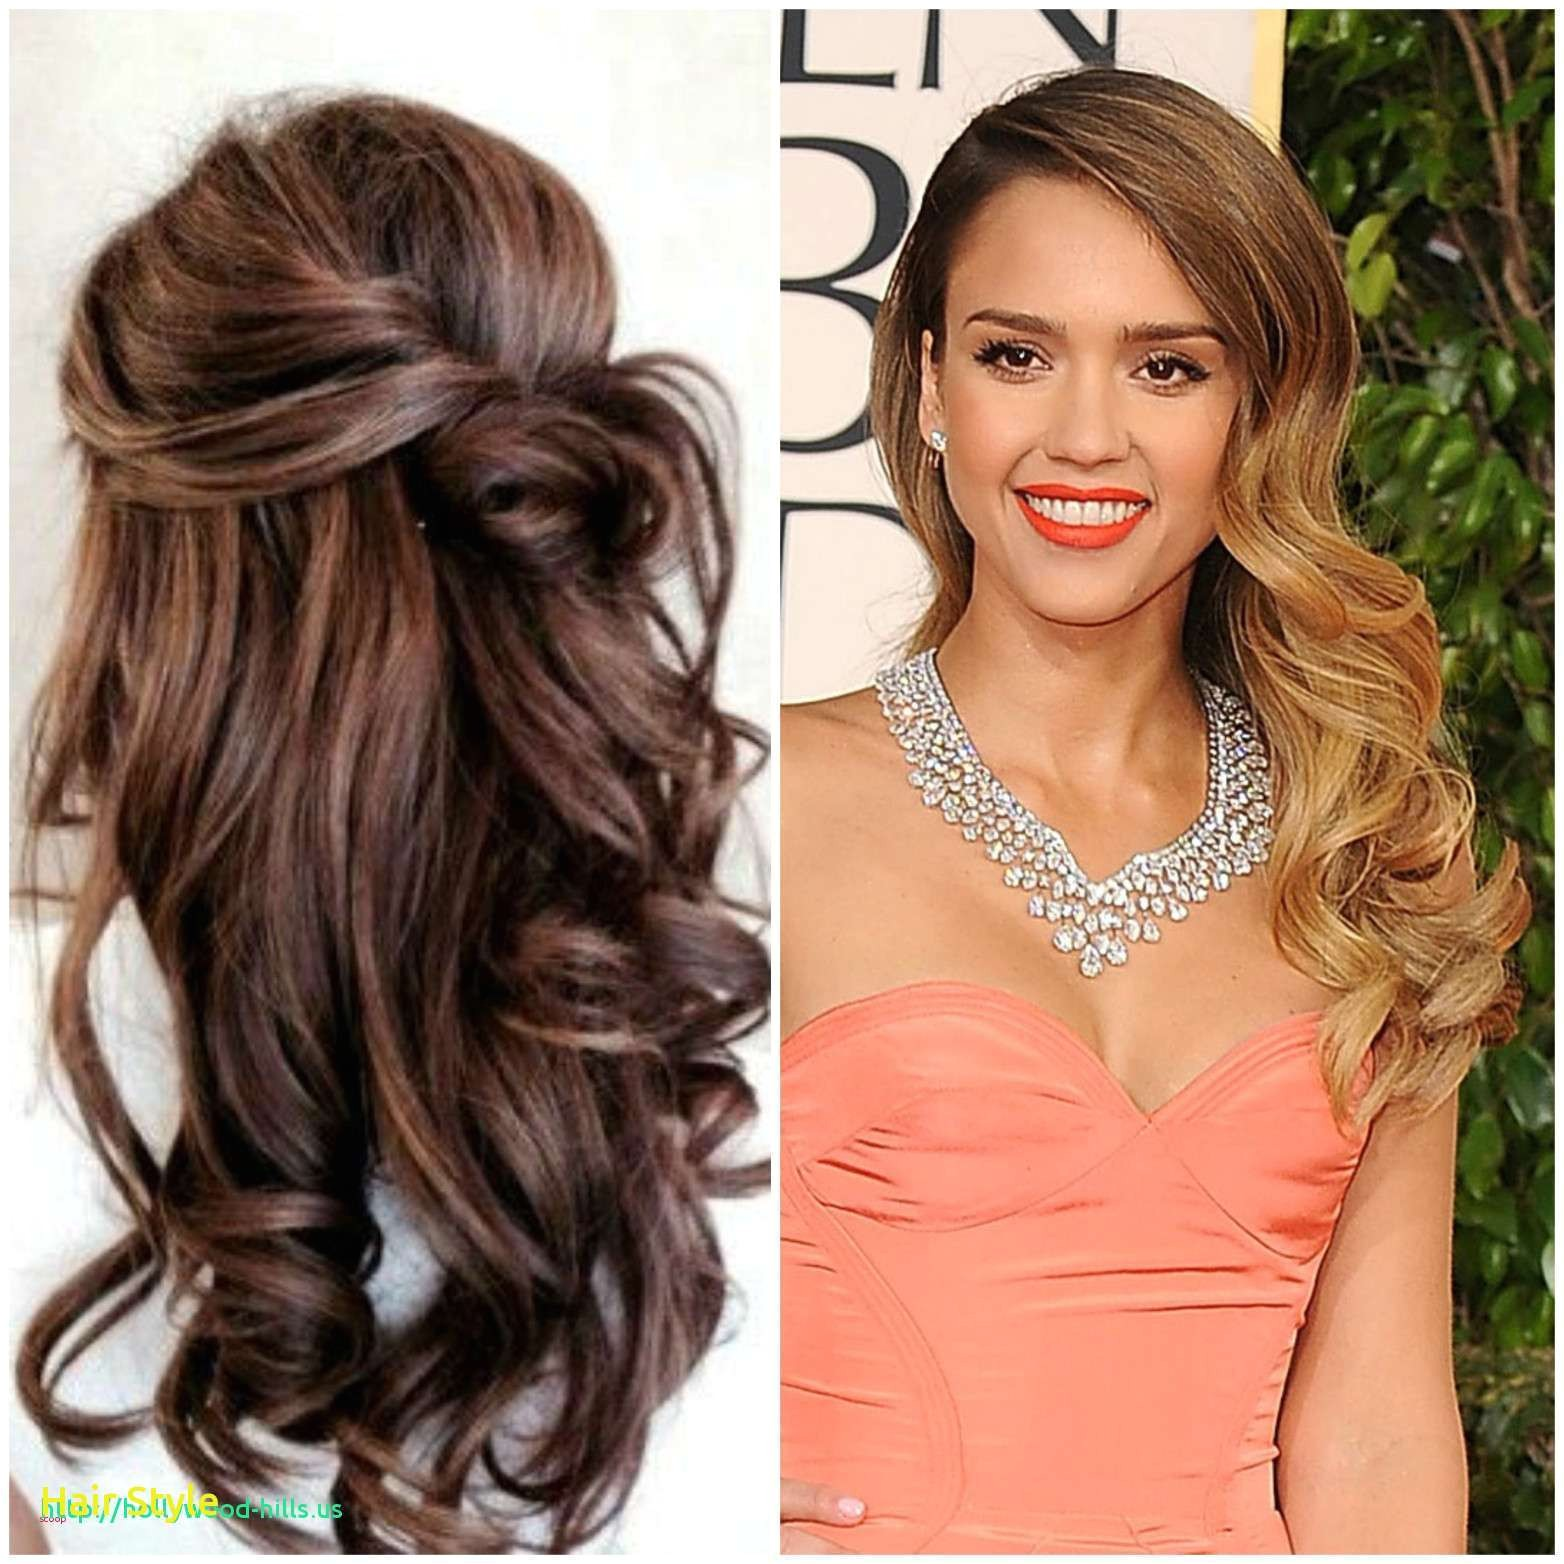 hair coloring inspirational using amusing inspirational hairstyles for long hair 2015 luxury i pinimg 1200x 0d formal hairstyles with curls